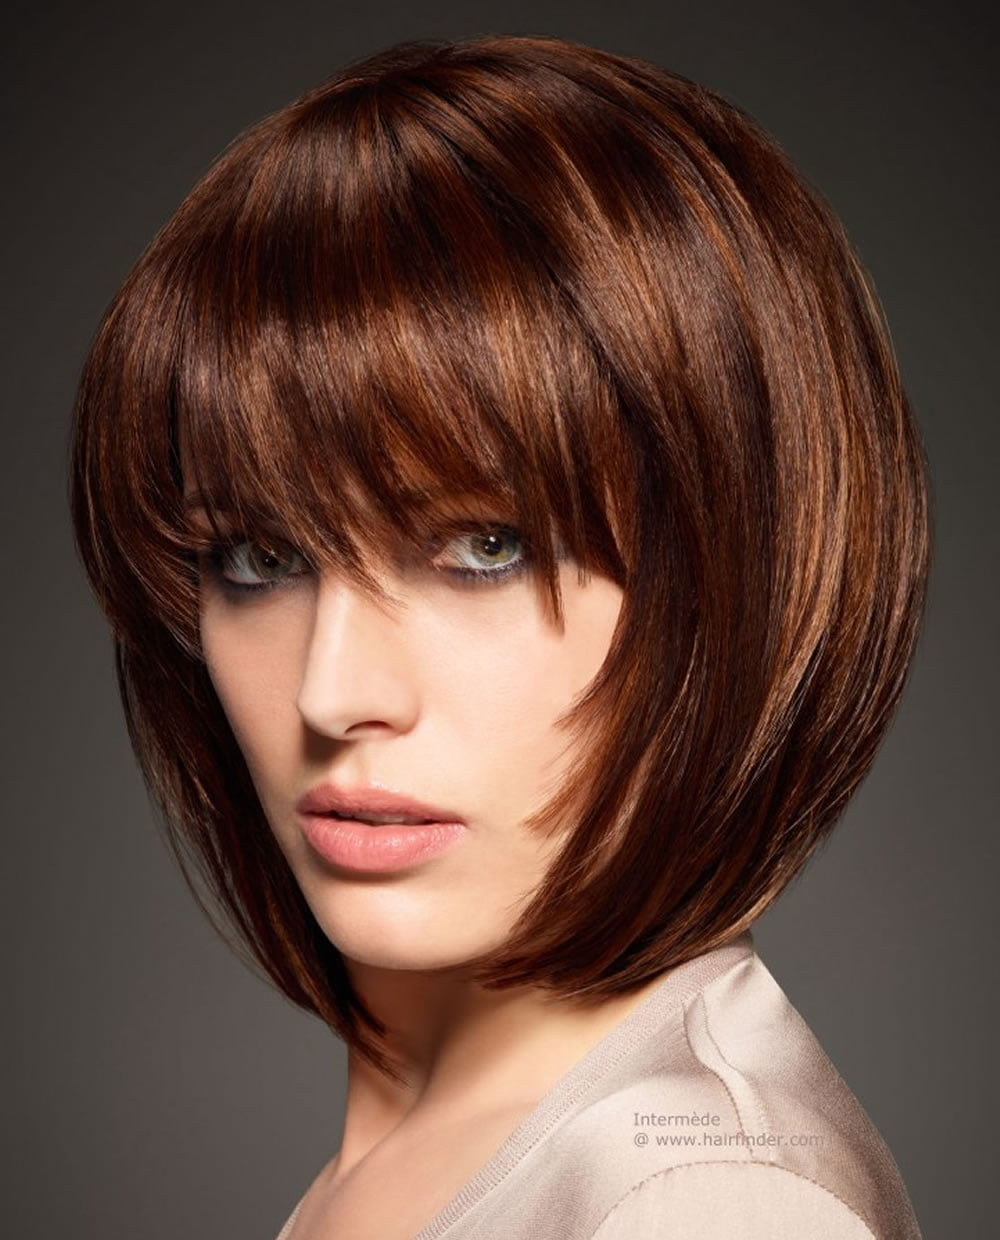 Short Bob Haircuts 2018 New Bob Hair Style Cute Bob Hair Page 4 Hairstyles